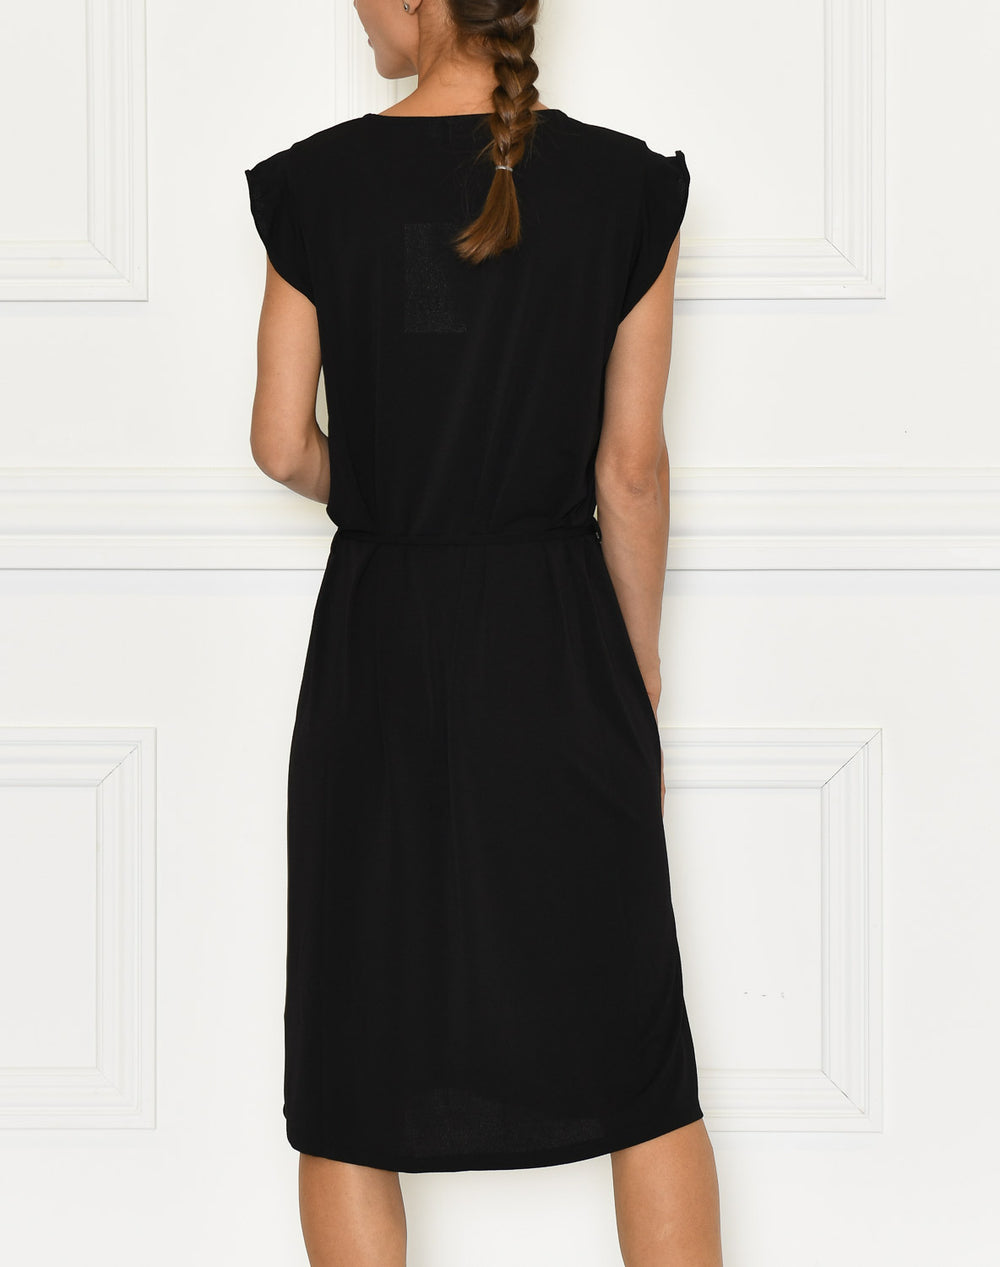 Saint Tropez Pam Jersey dress black